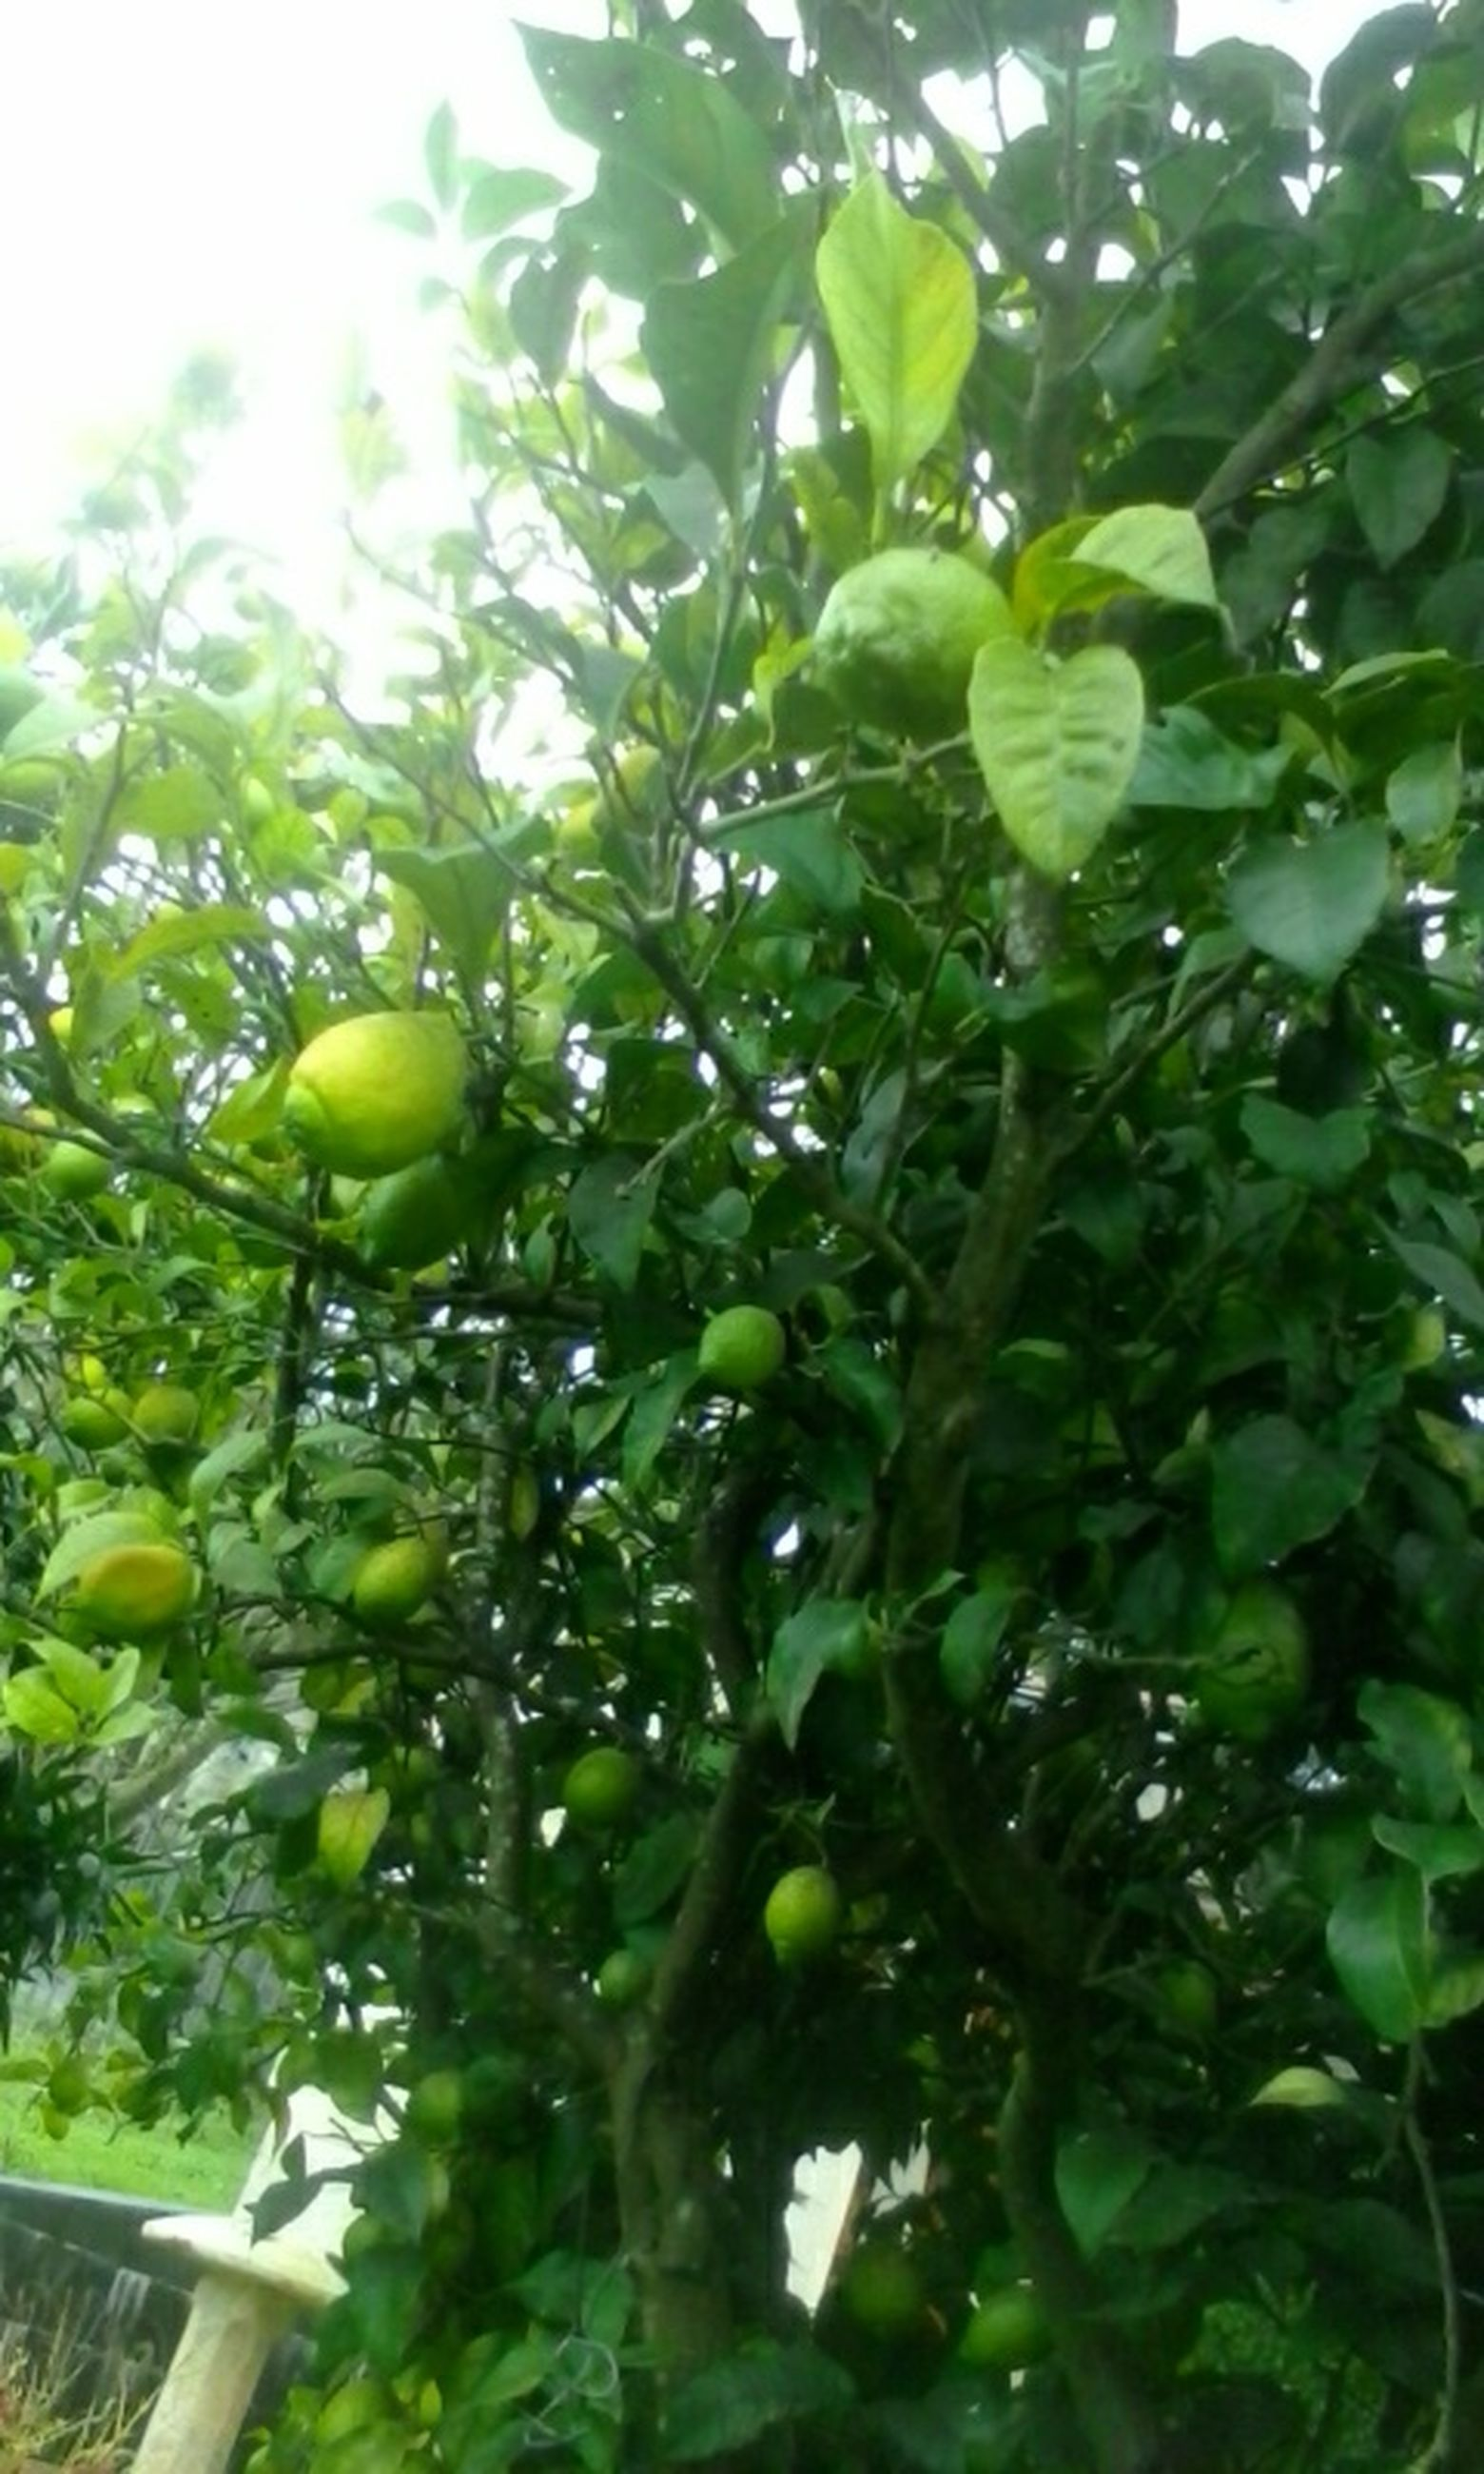 green color, growth, tree, leaf, freshness, close-up, nature, branch, low angle view, fruit, food and drink, day, drop, no people, plant, green, outdoors, focus on foreground, food, beauty in nature